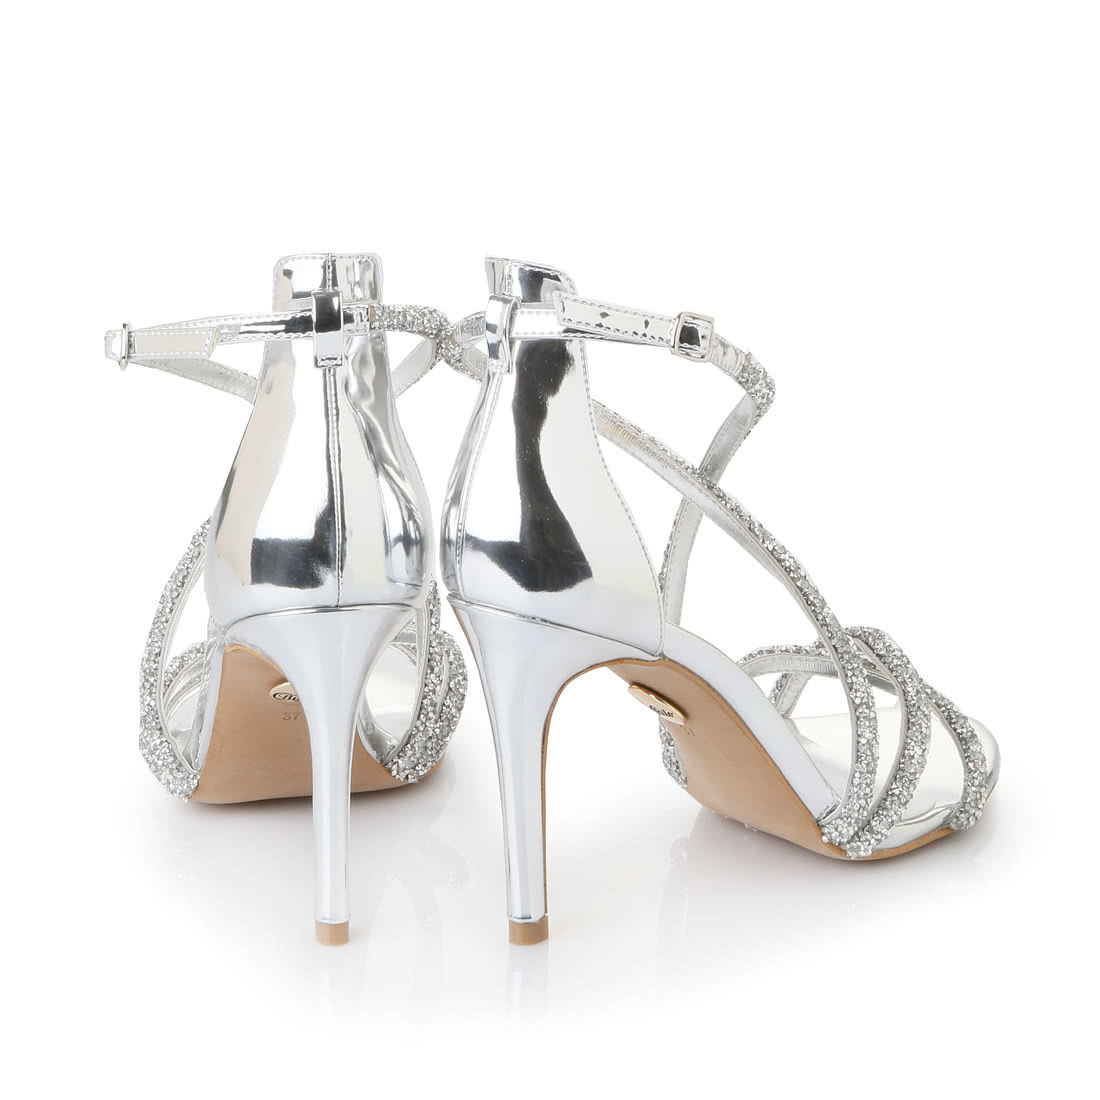 0097486bbe3 Buffalo strappy high-heeled sandals in silver glitter look buy ...